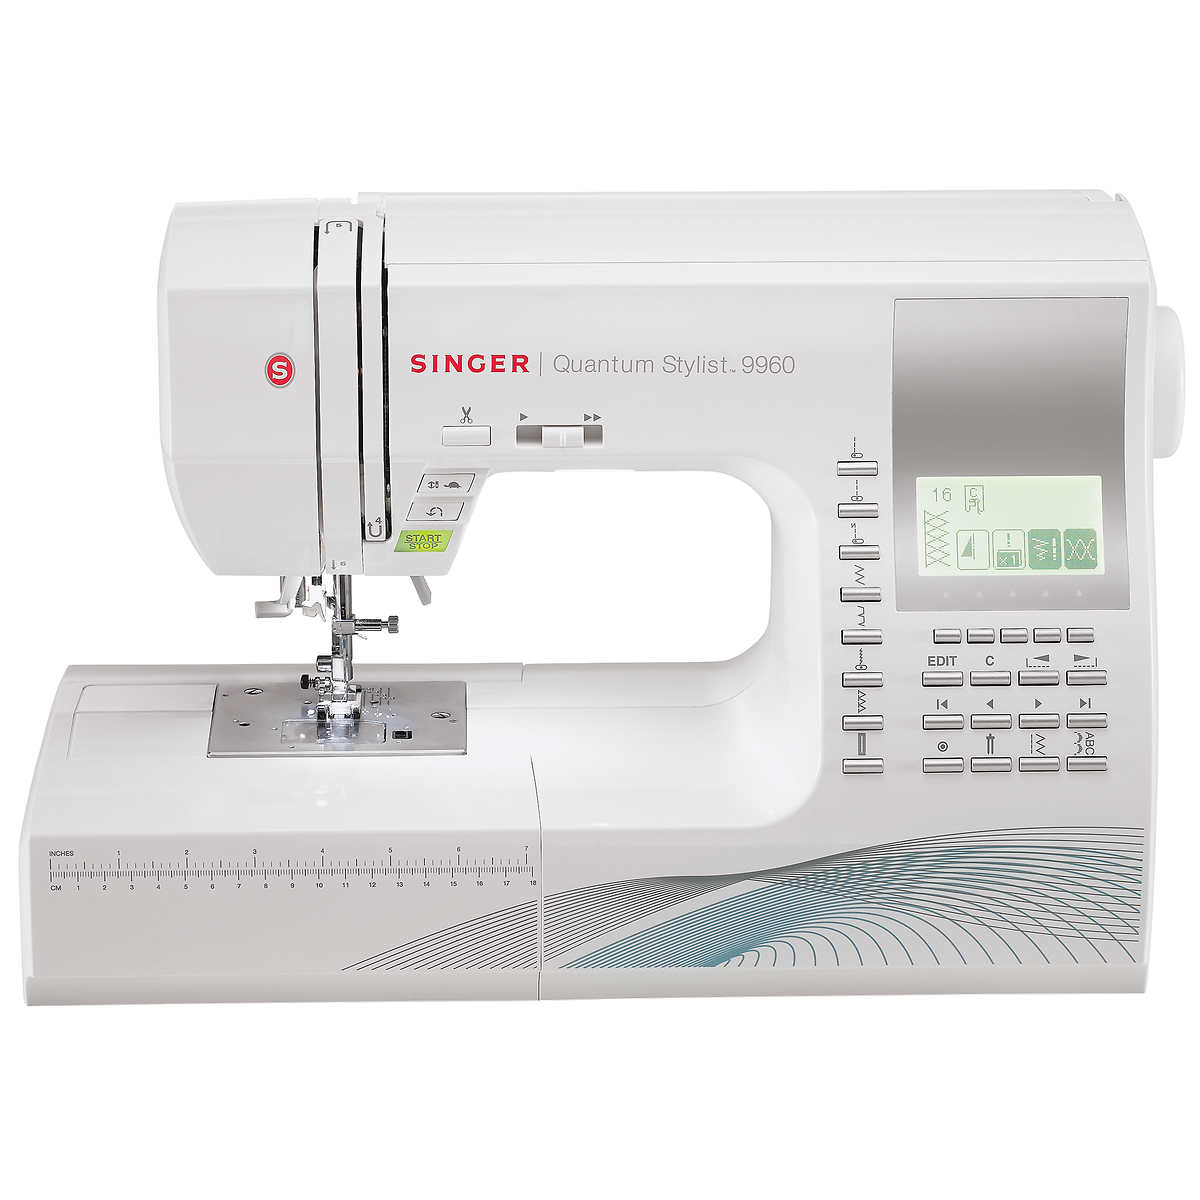 Singer 9960 Quantum Stylist Computerized Sewing Machine Printable Threading Guide Easy Crafts 1 Click To Zoom